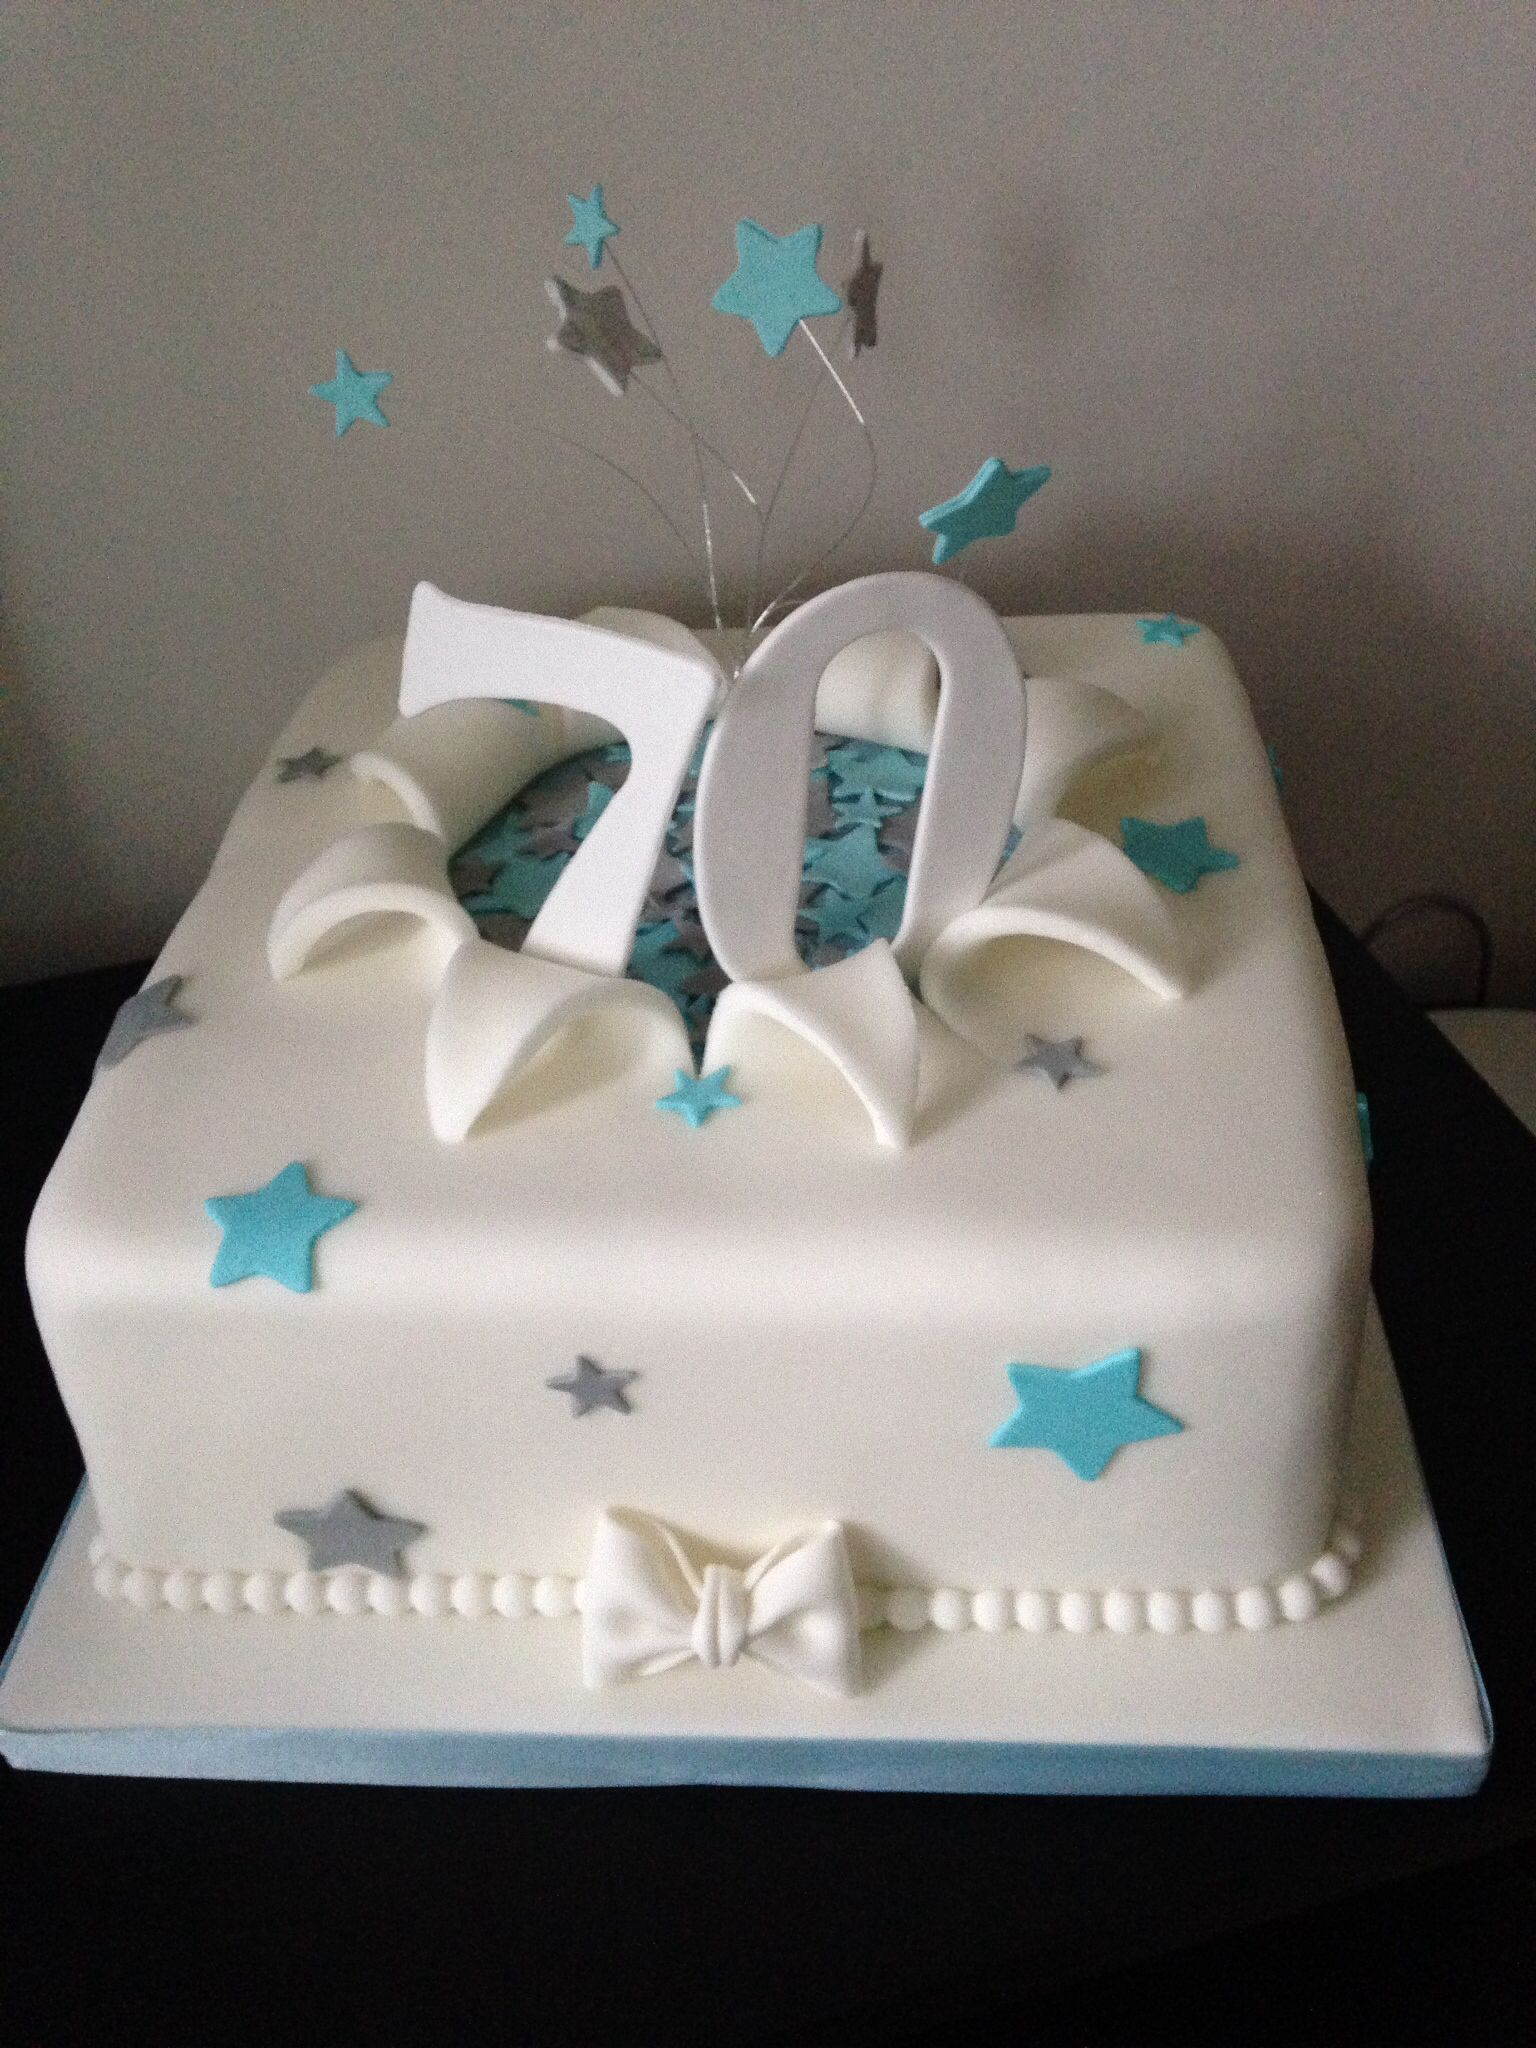 70th Birthday Cake In Turquoise And Silver Cakes